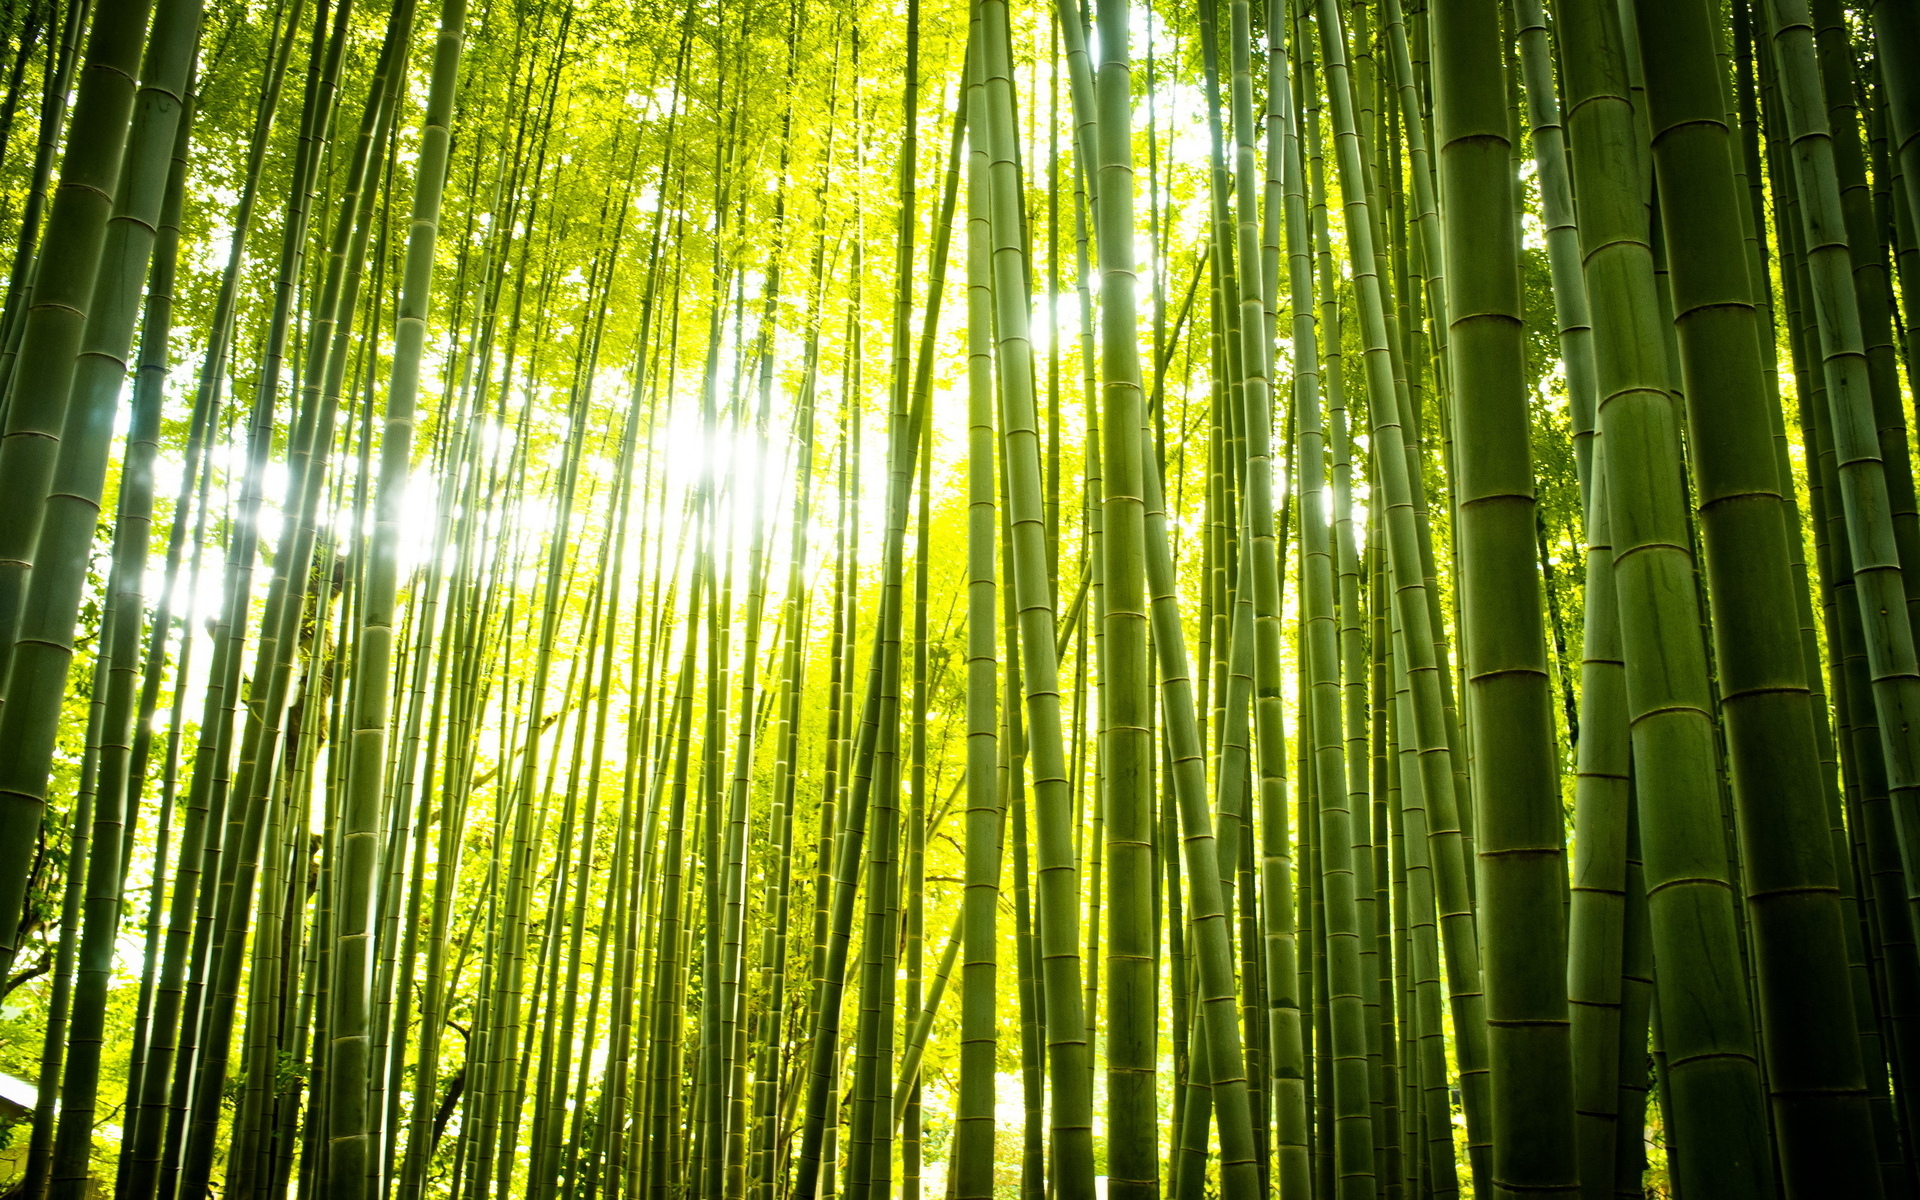 Bamboo Computer Wallpapers Desktop Backgrounds 1920x1200 ID 1920x1200